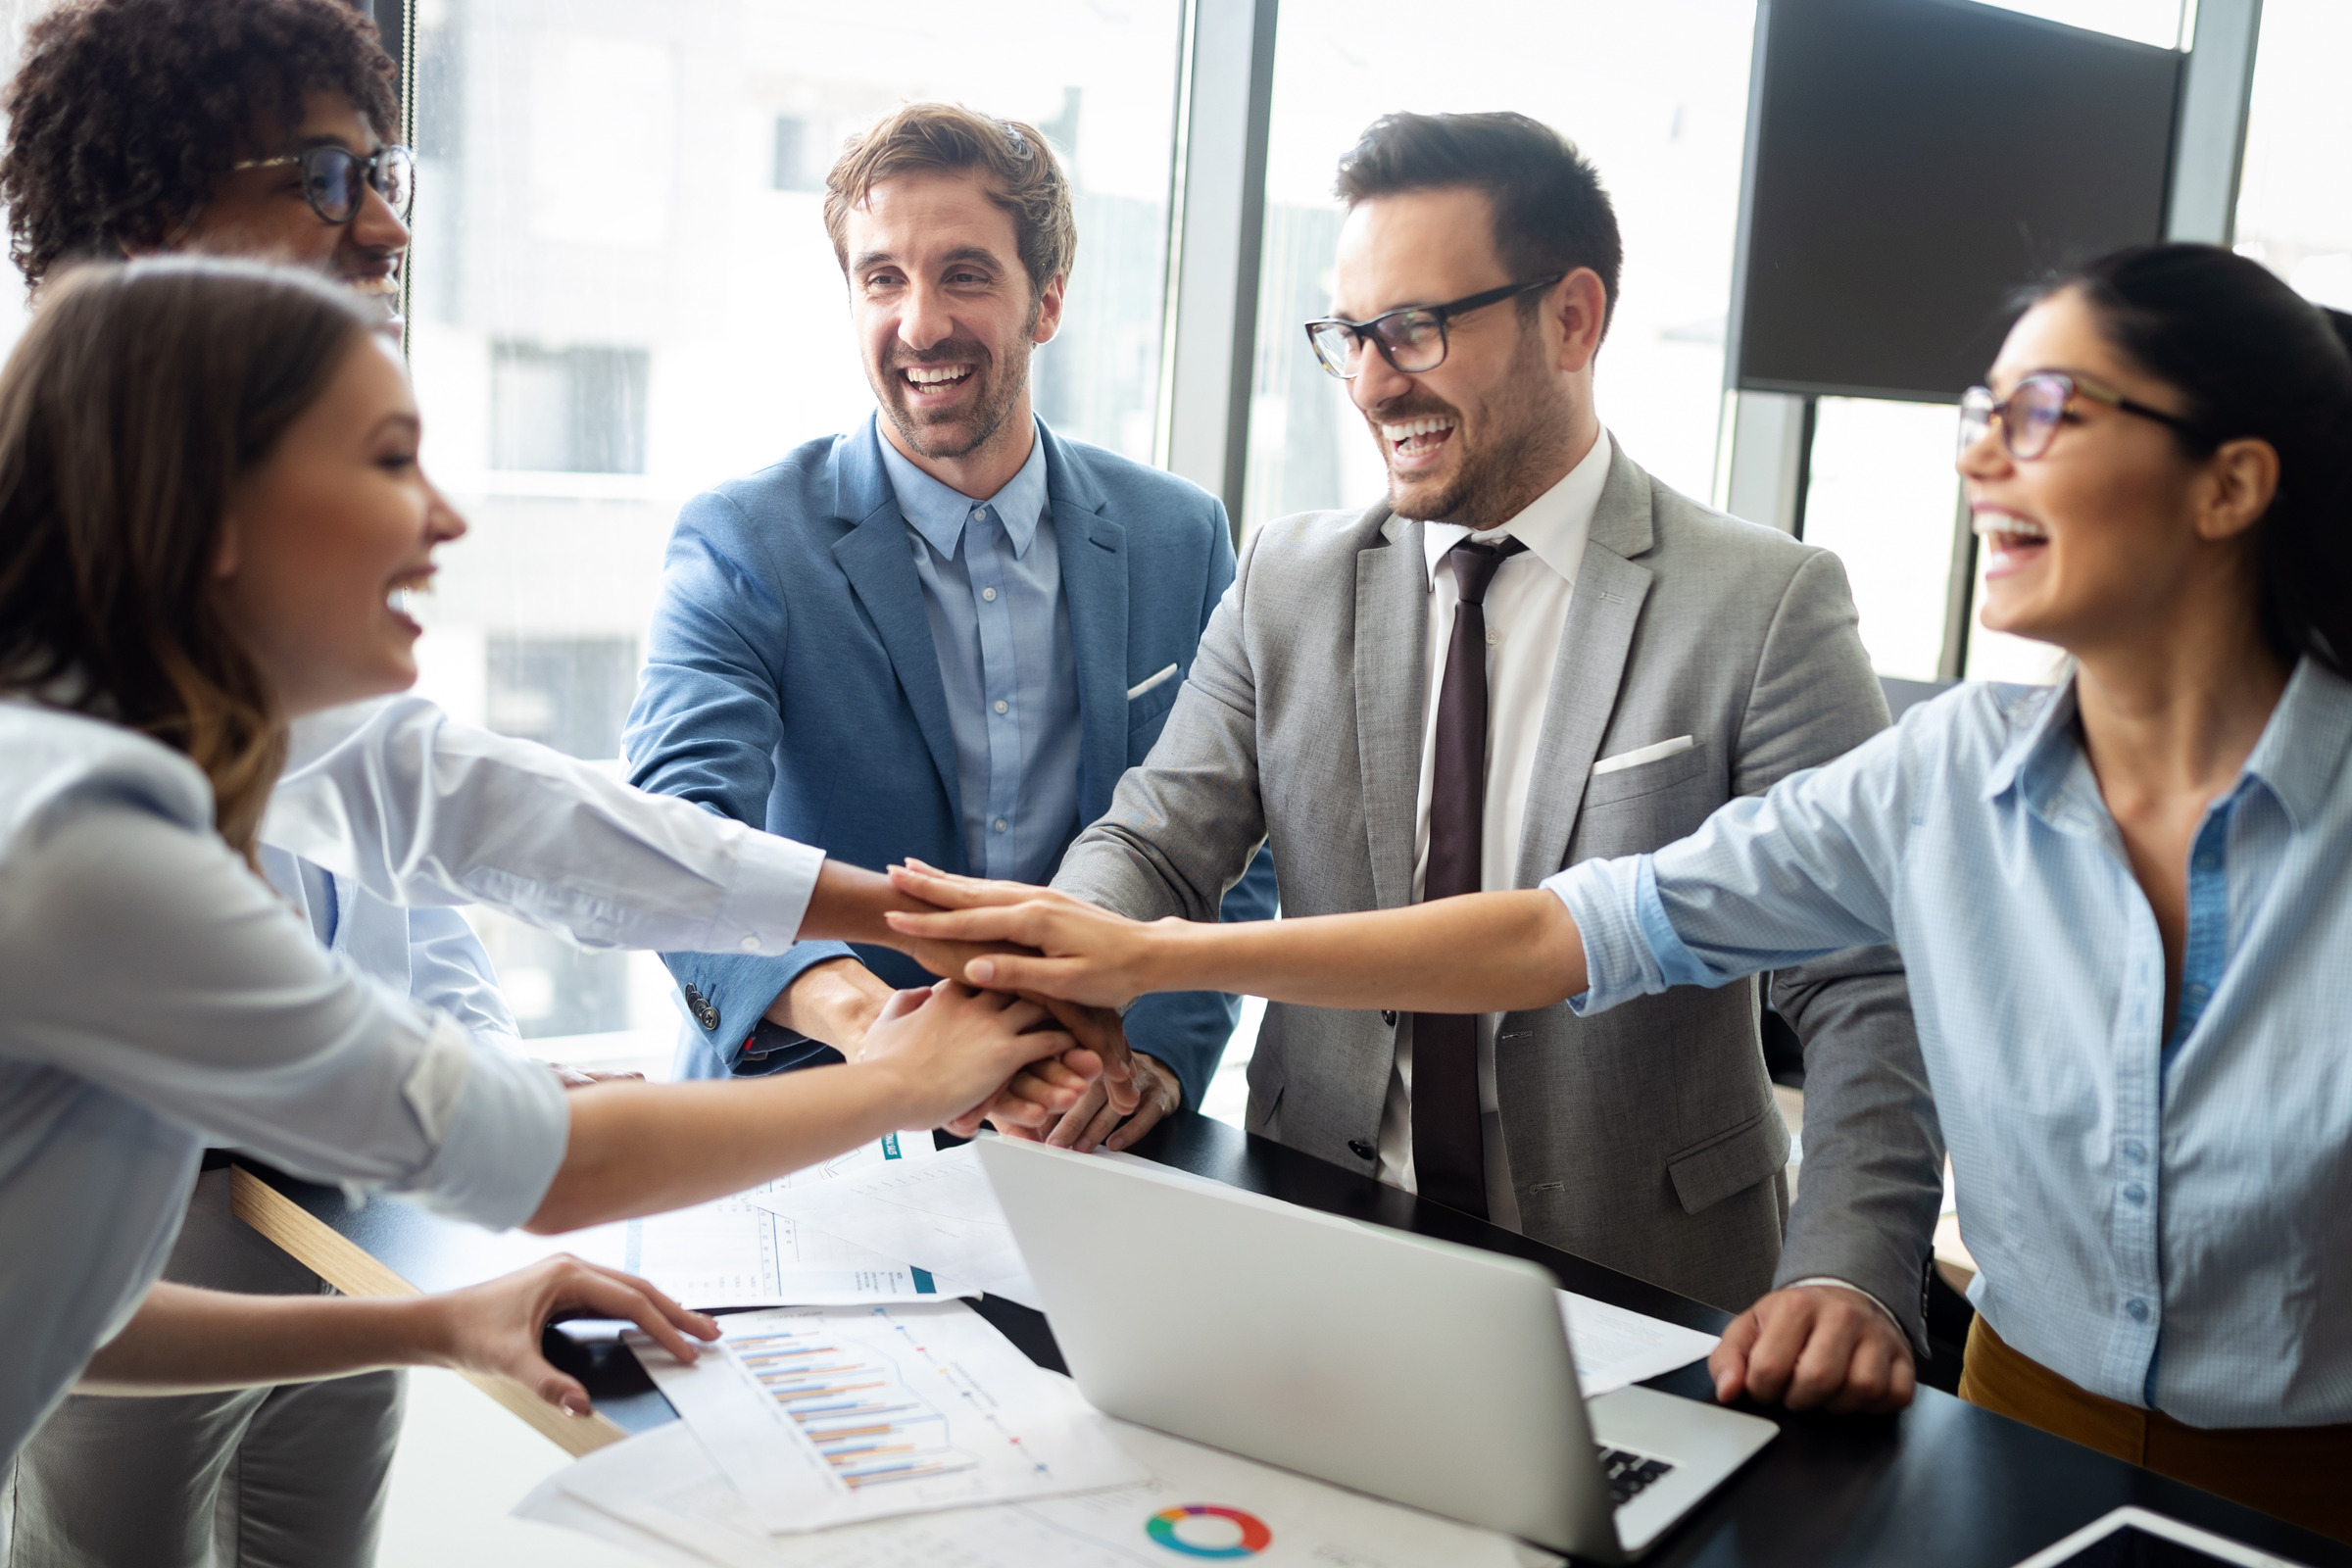 business group of people putting hands together in circle